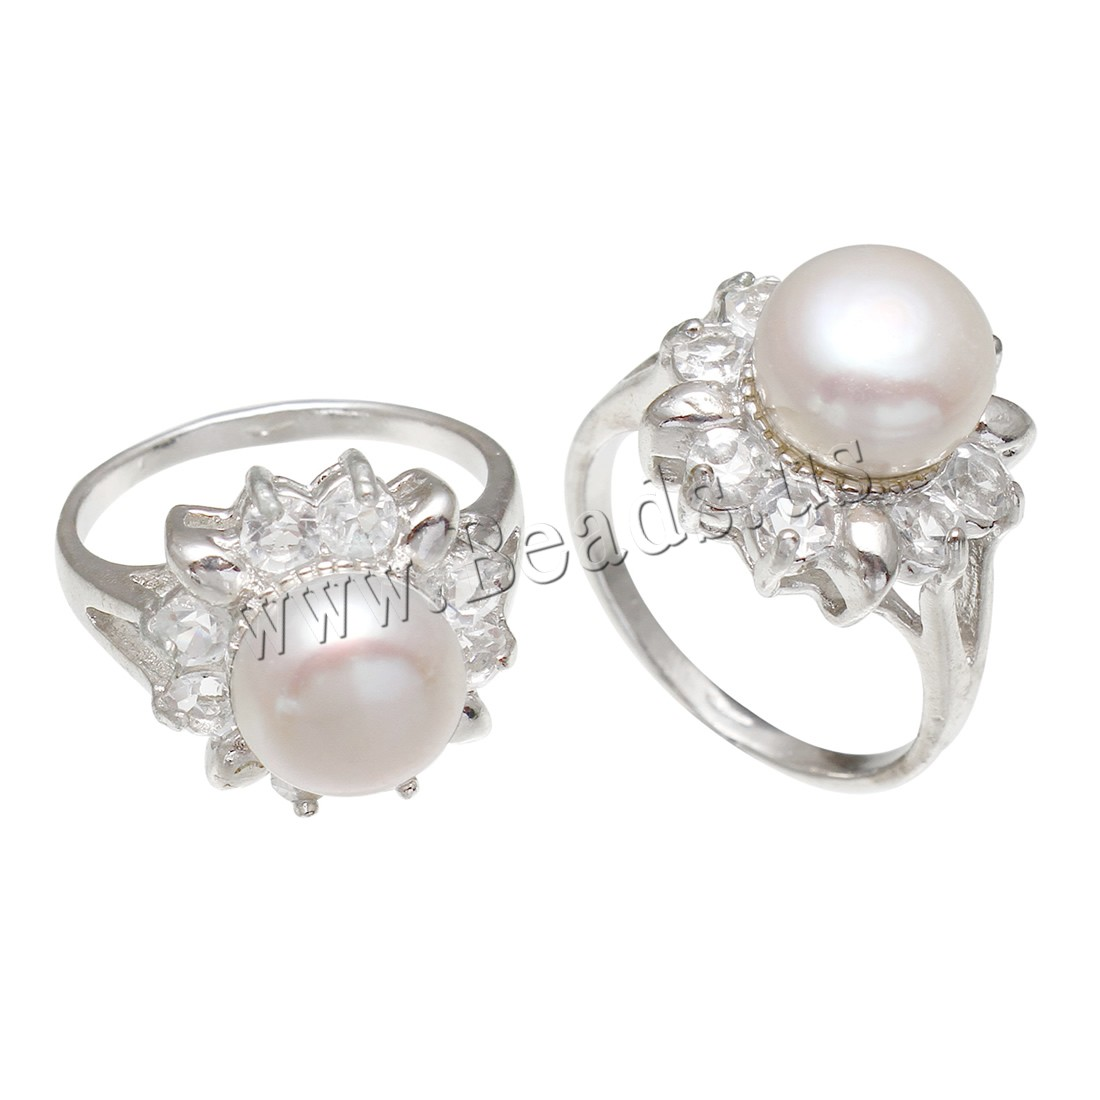 Buy Freshwater Pearl Finger Ring Brass Freshwater Pearl platinum color plated woman & rhinestone white nickel lead & cadmium free 9-10mm US Ring Size:8 Sold PC